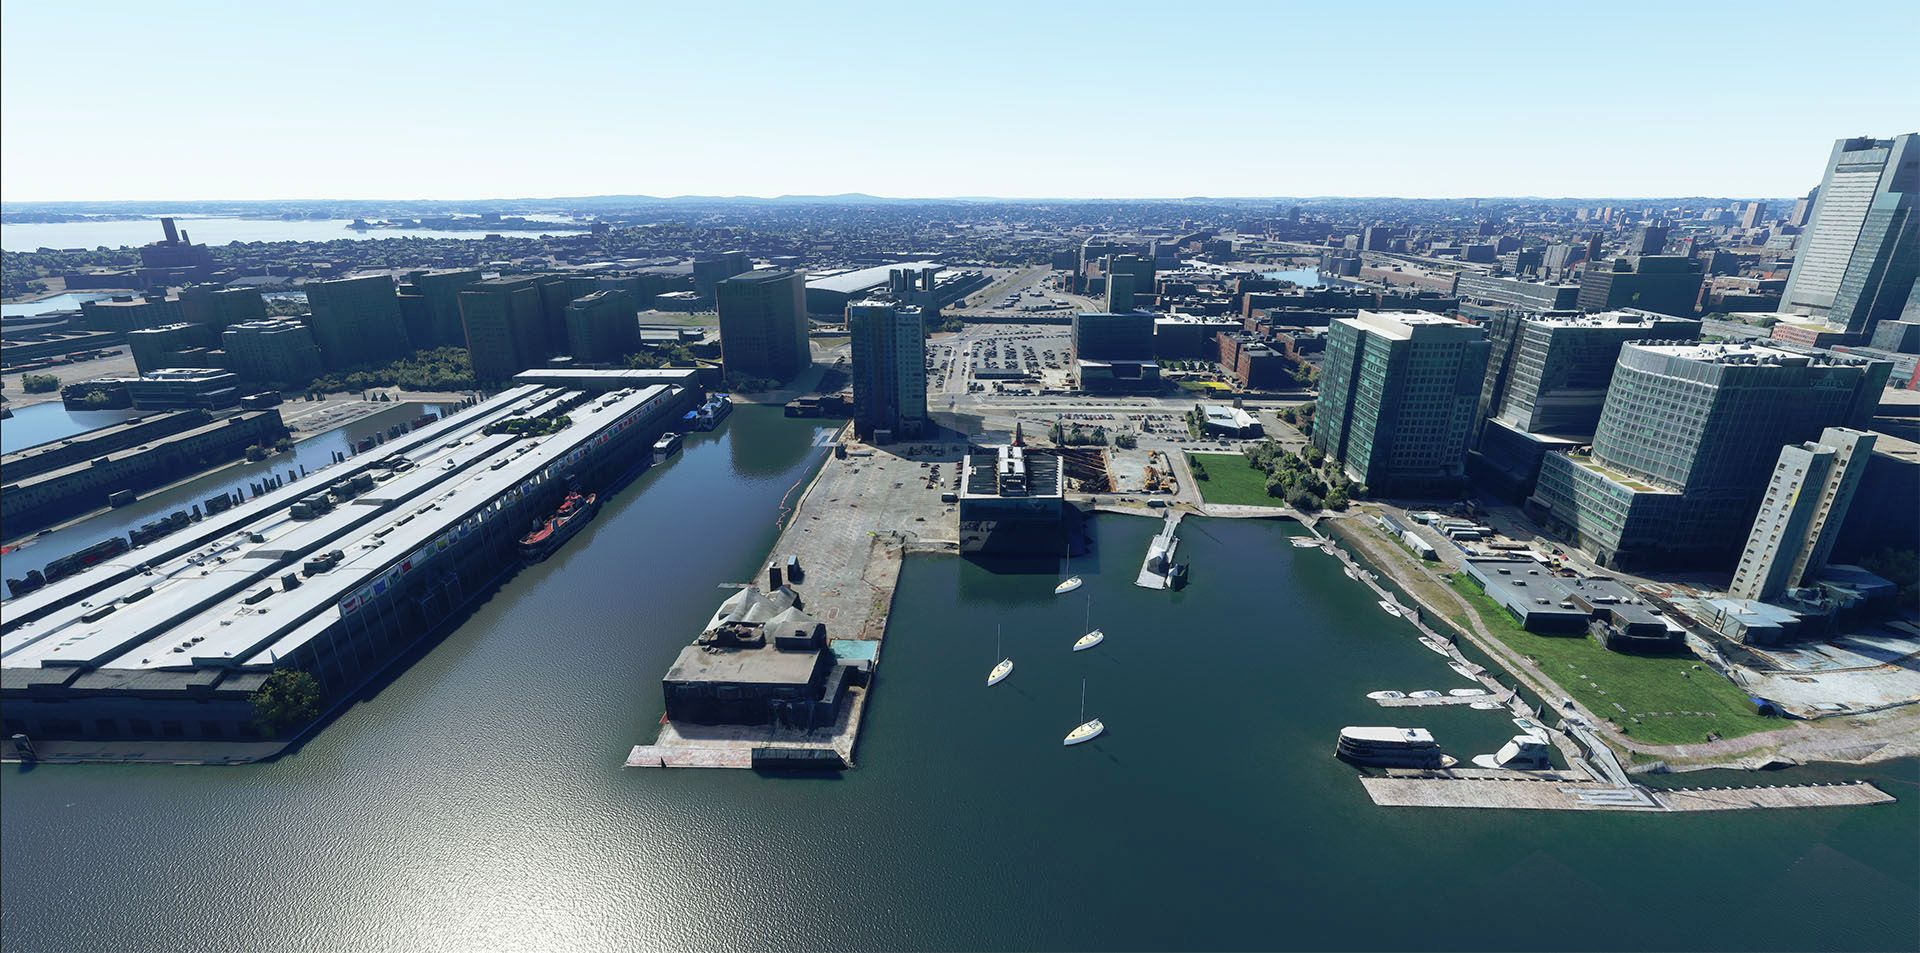 MSFS Boston Harbours Photogrammetry